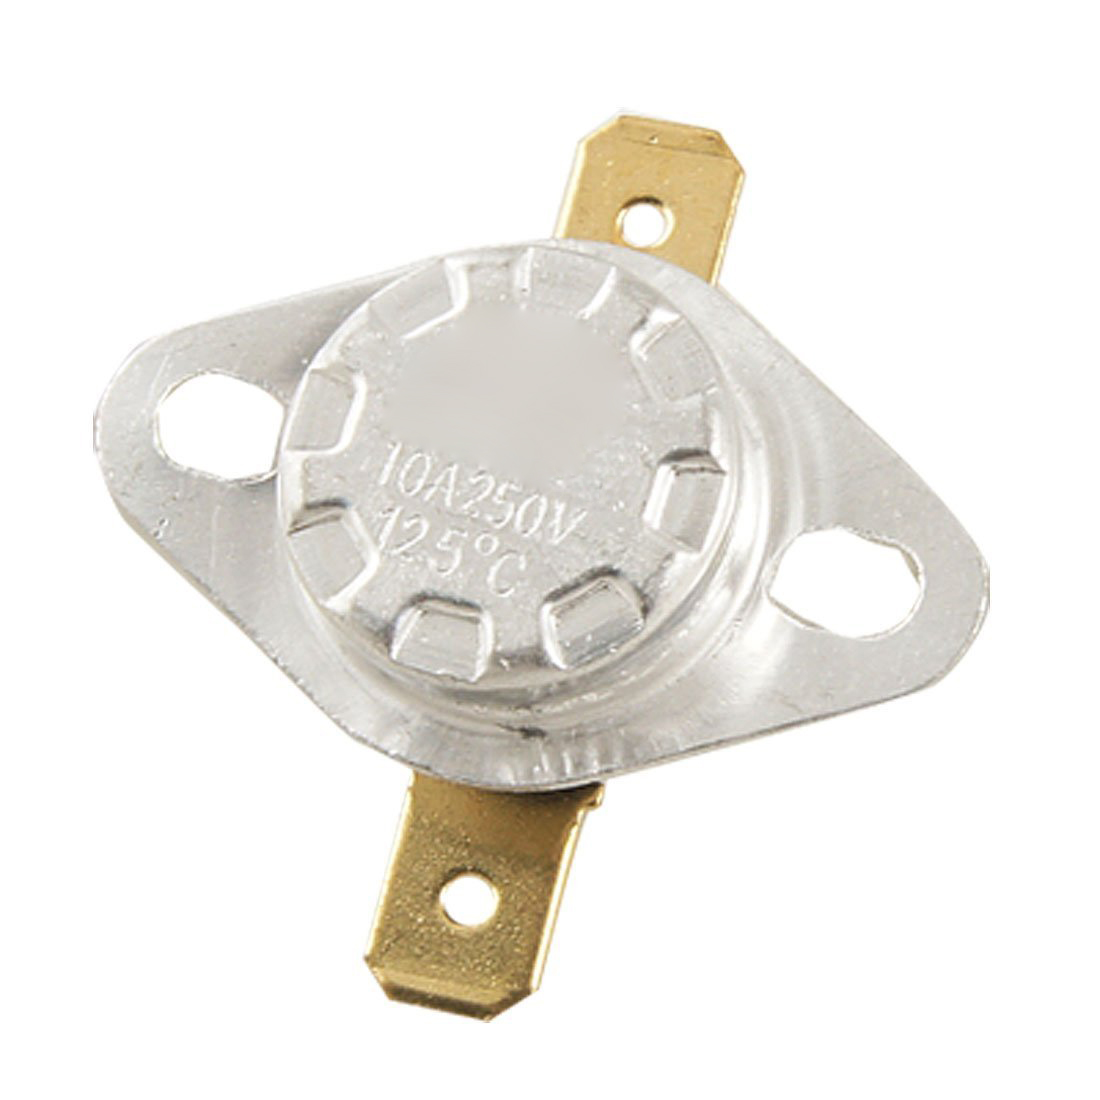 JFBL 2X 125 Celsius NC Temperature Control Switch Thermostat(China (Mainland))